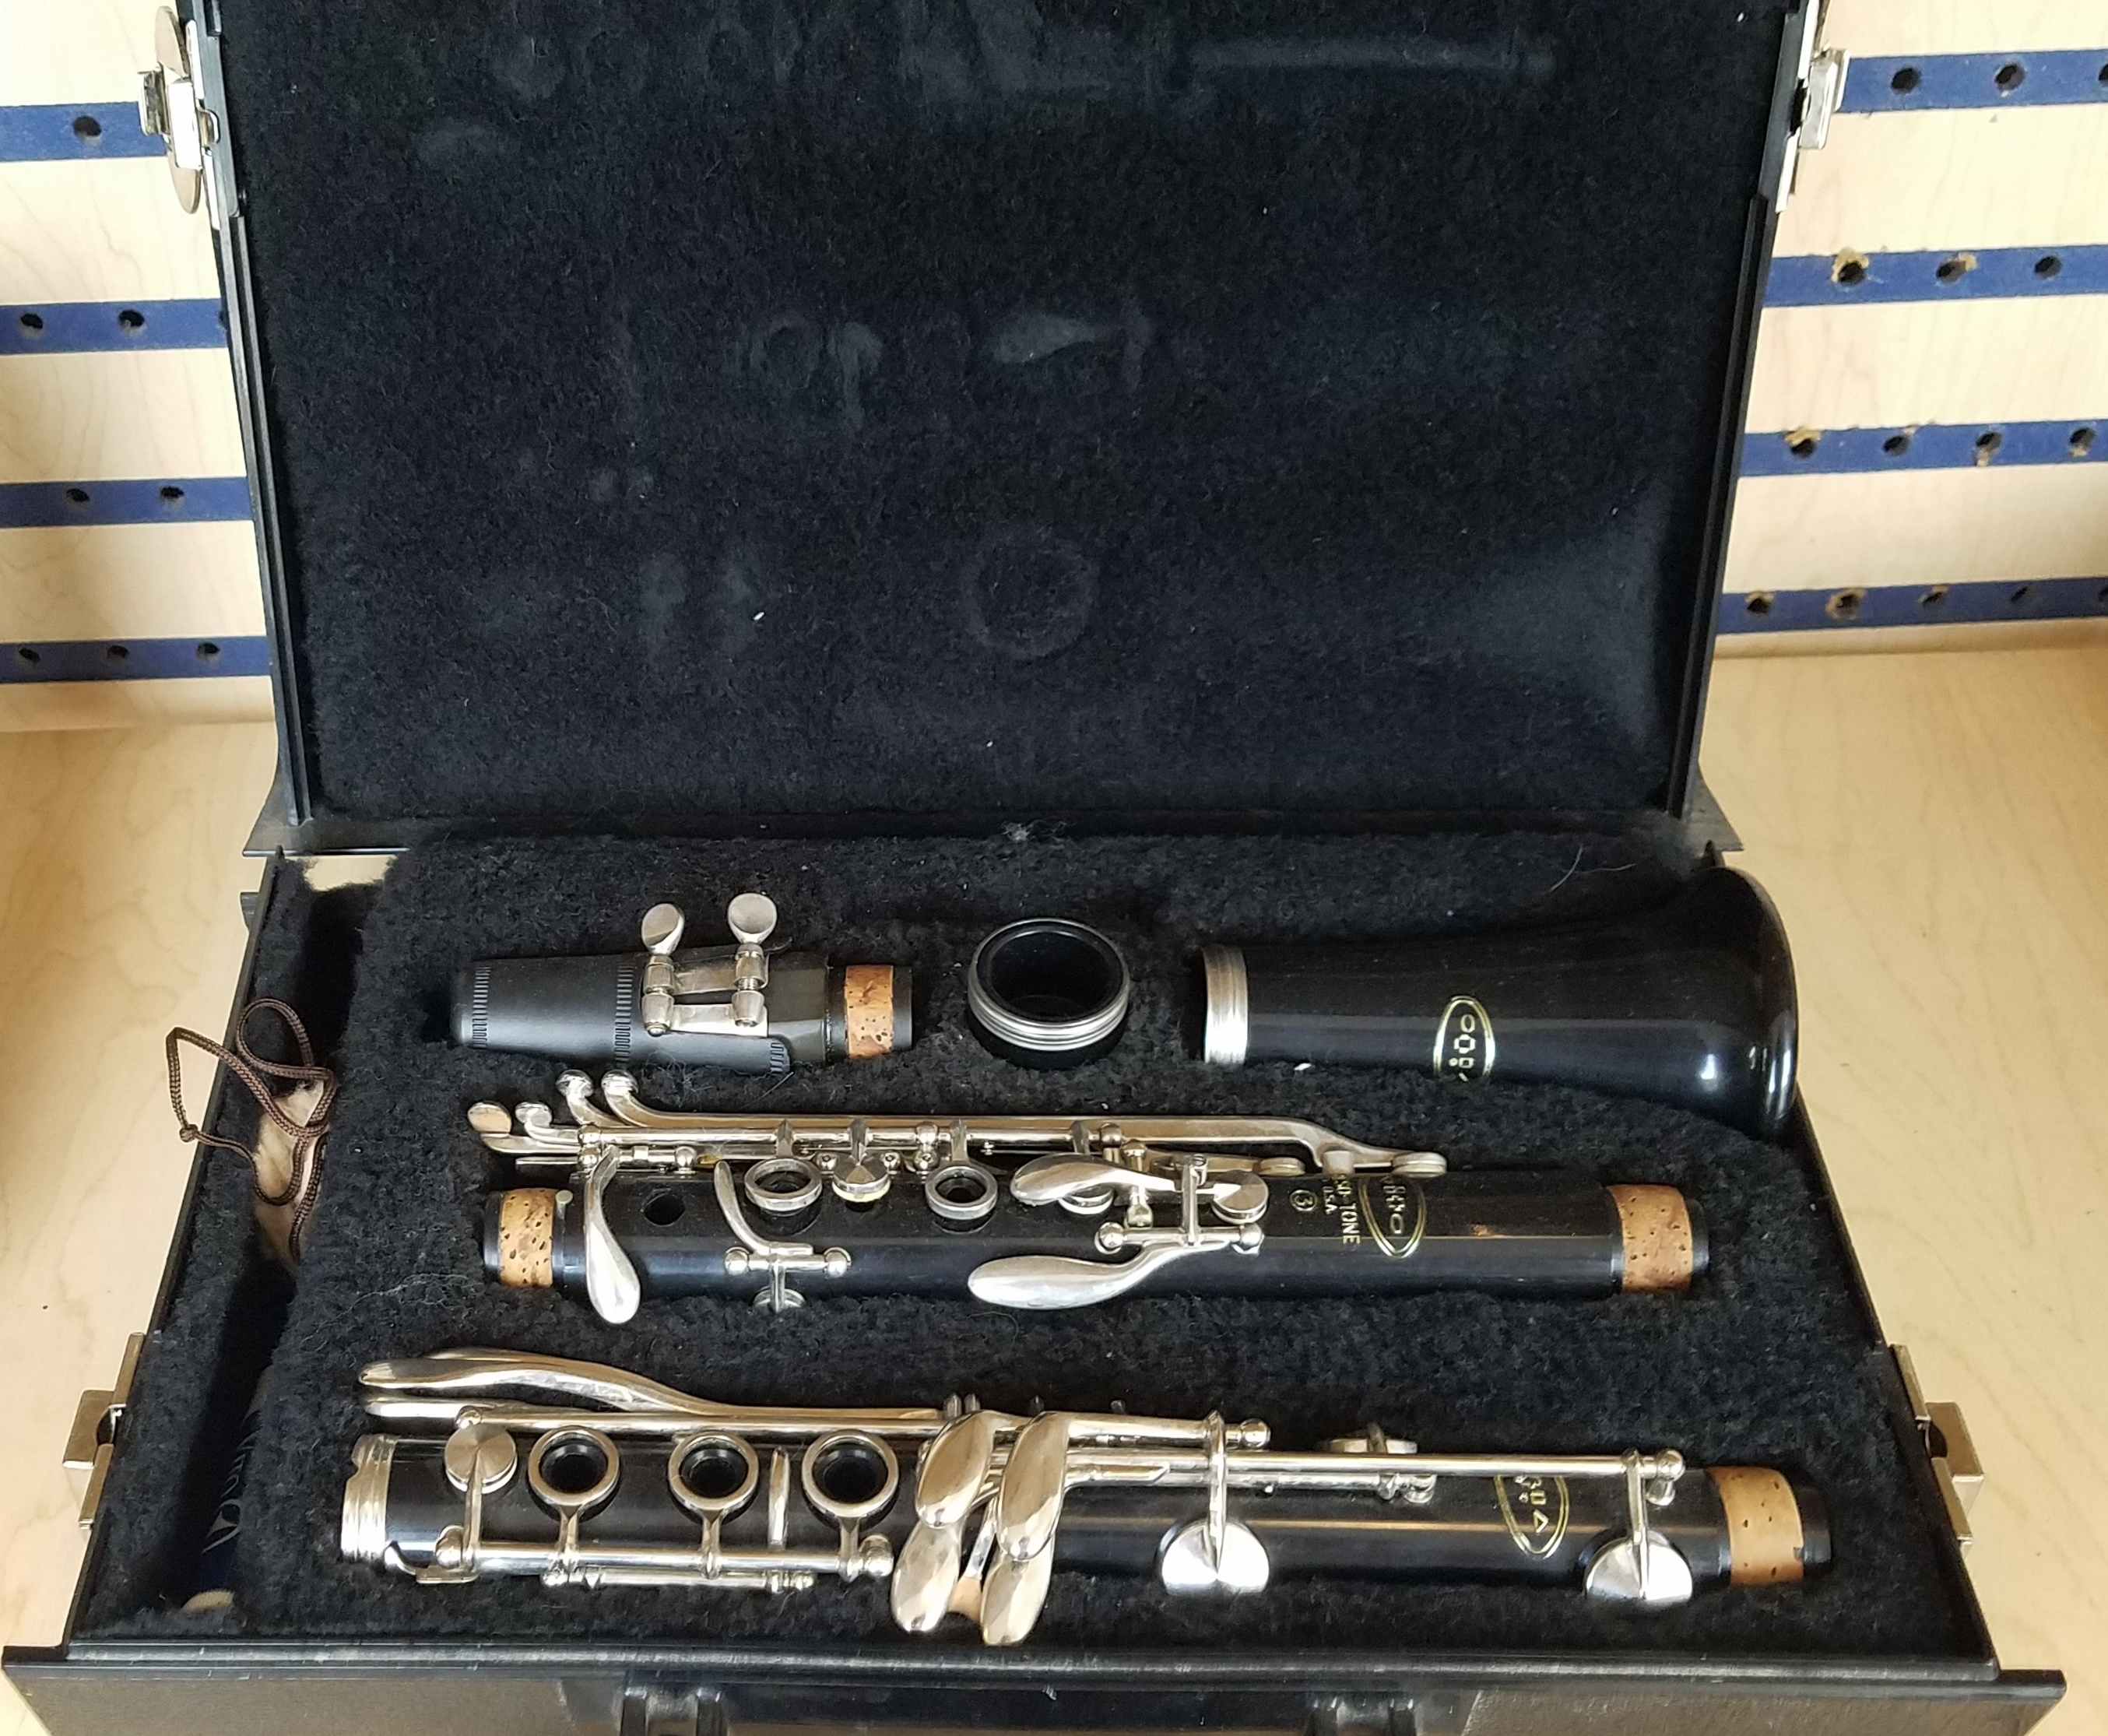 RESOTONE  3  CLARINET MUSICAL INSTRUMENT